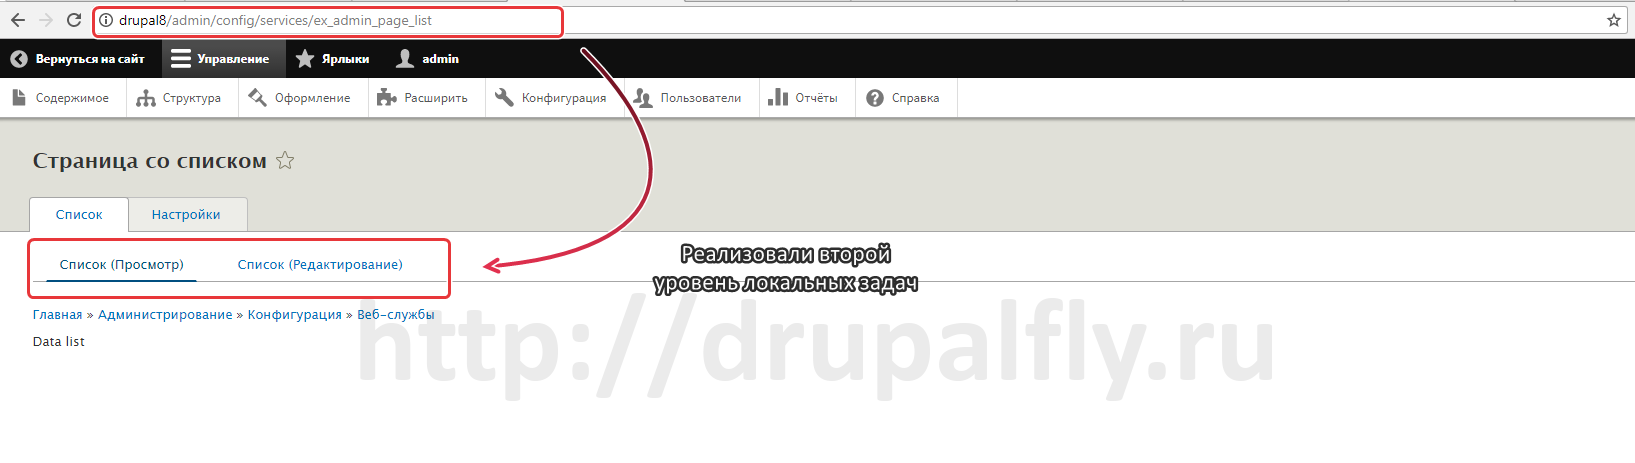 create_administration_page_in_drupal_8_4.png